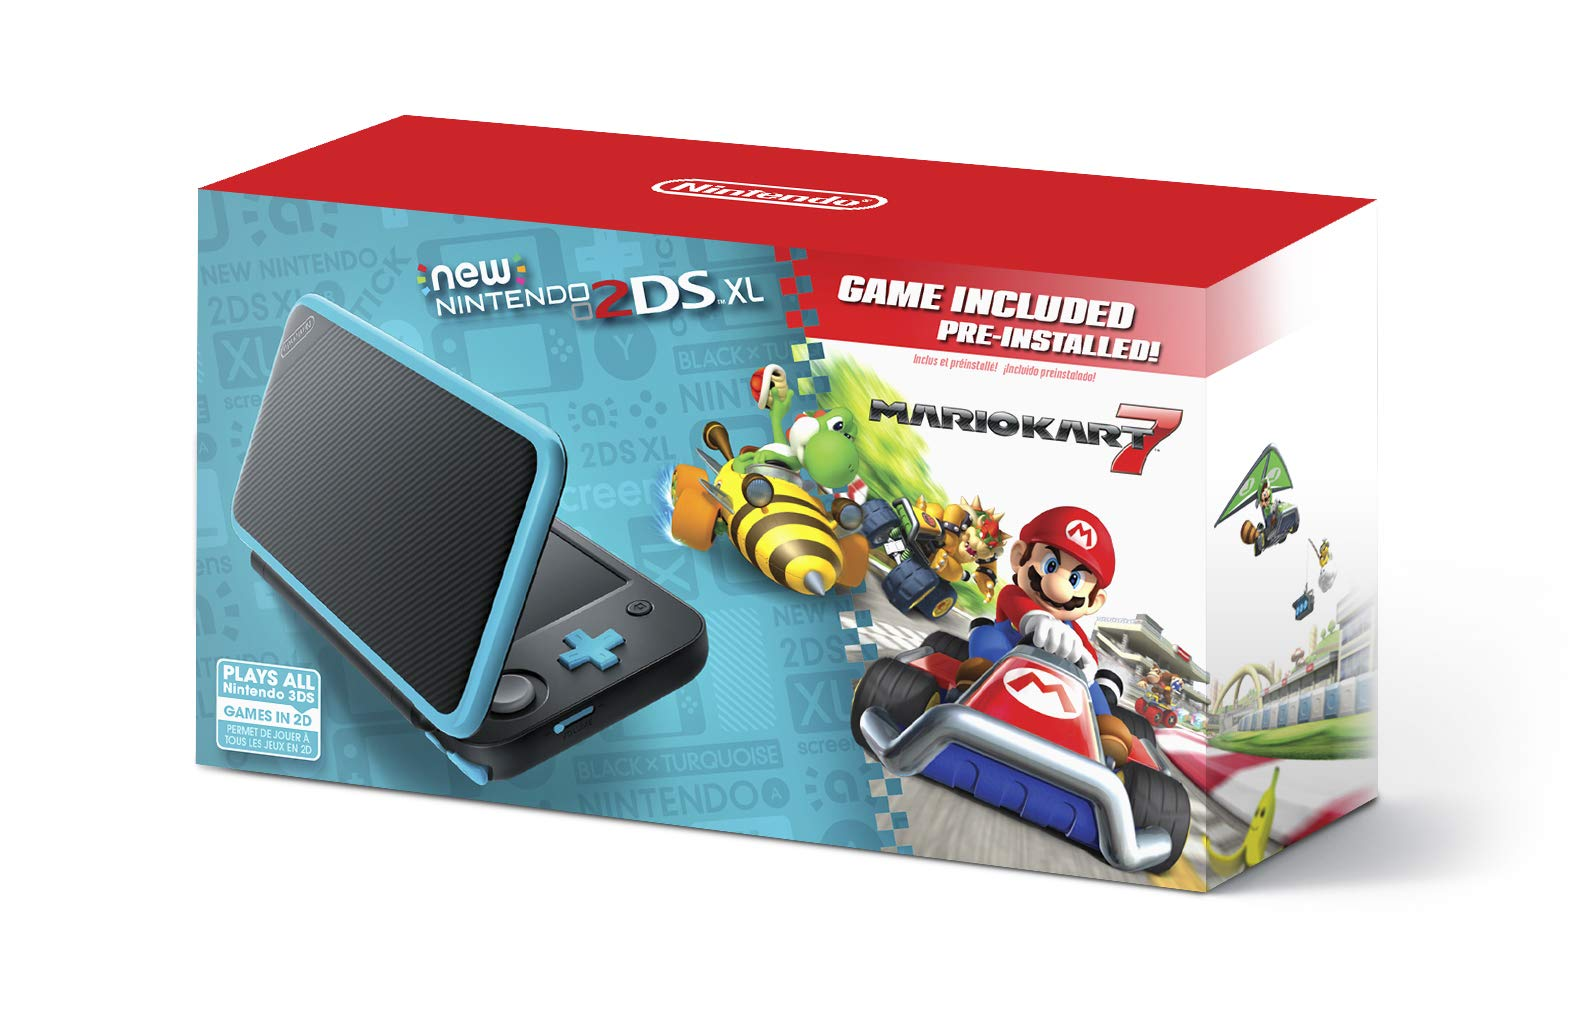 New Nintendo 2DS XL - Black + Turquoise With Mario Kart 7 Pre-installed - Nintendo 2DS by Nintendo (Image #1)